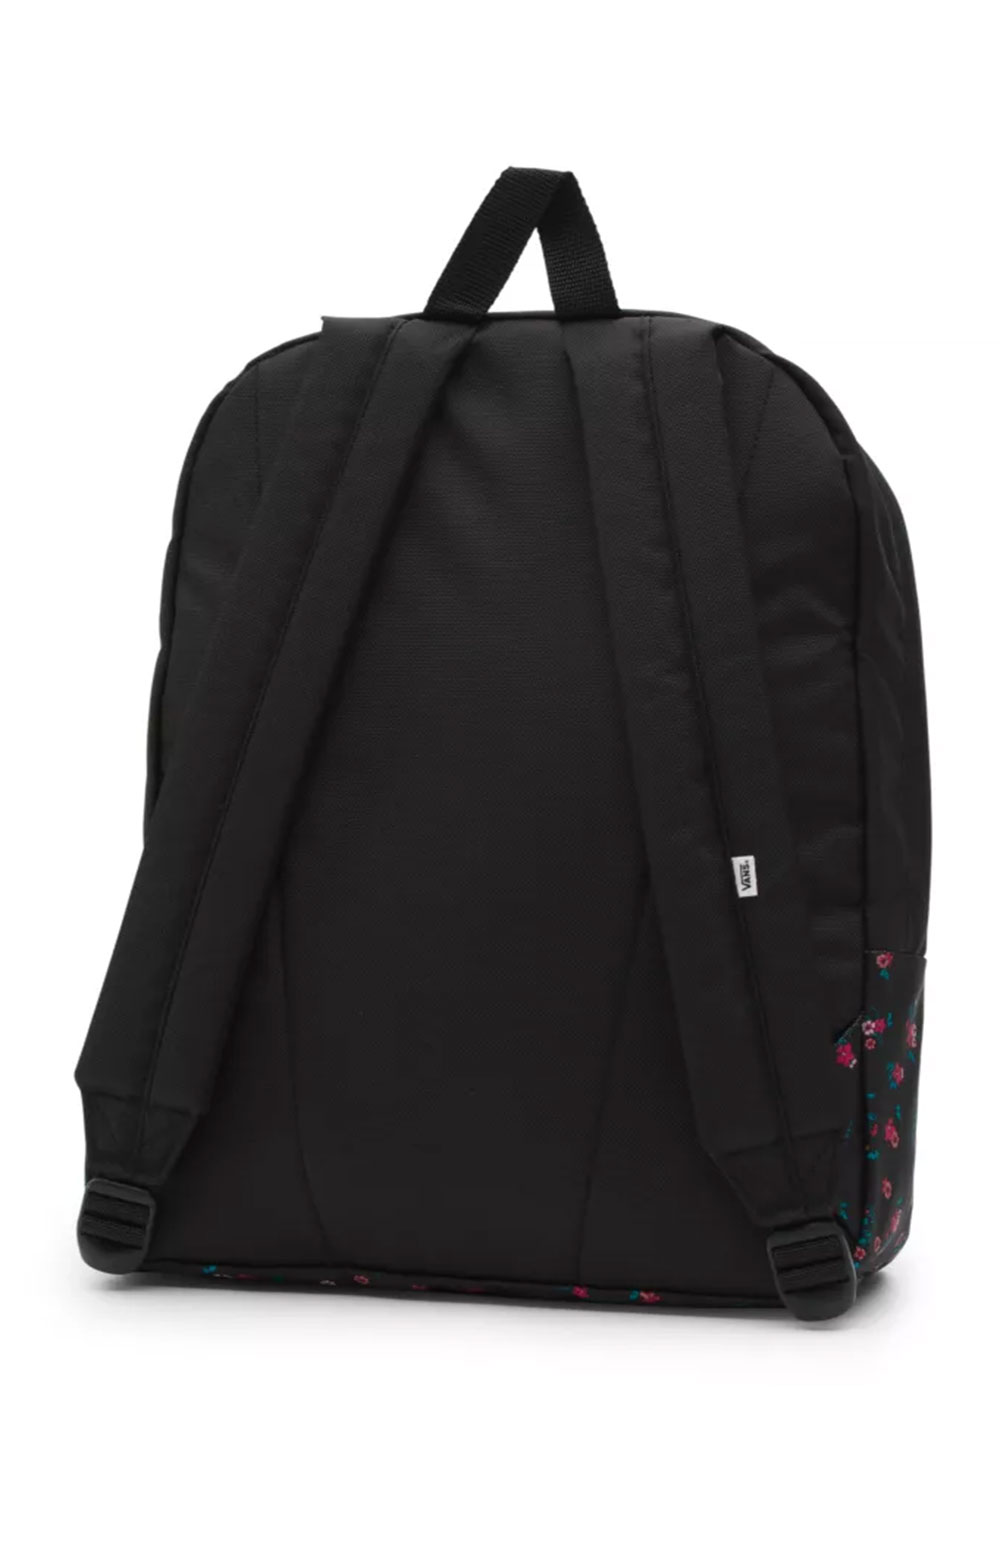 Realm Backpack - BeautyFloral 3